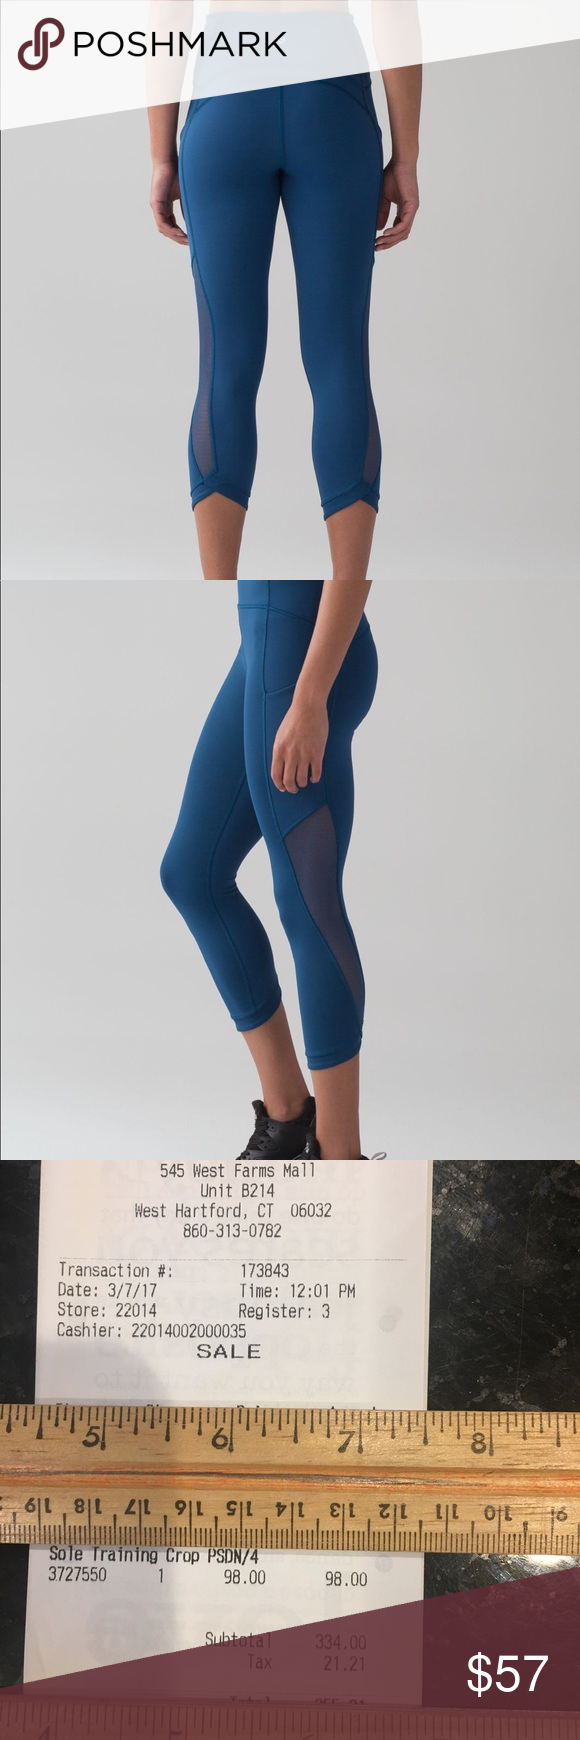 0c978f6fb9 Lululemon Sole Training Crop in Poseidon size 4 Worn once! Flawless  condition! Smoke free home. Firm lululemon athletica Pants Ankle & Cropped